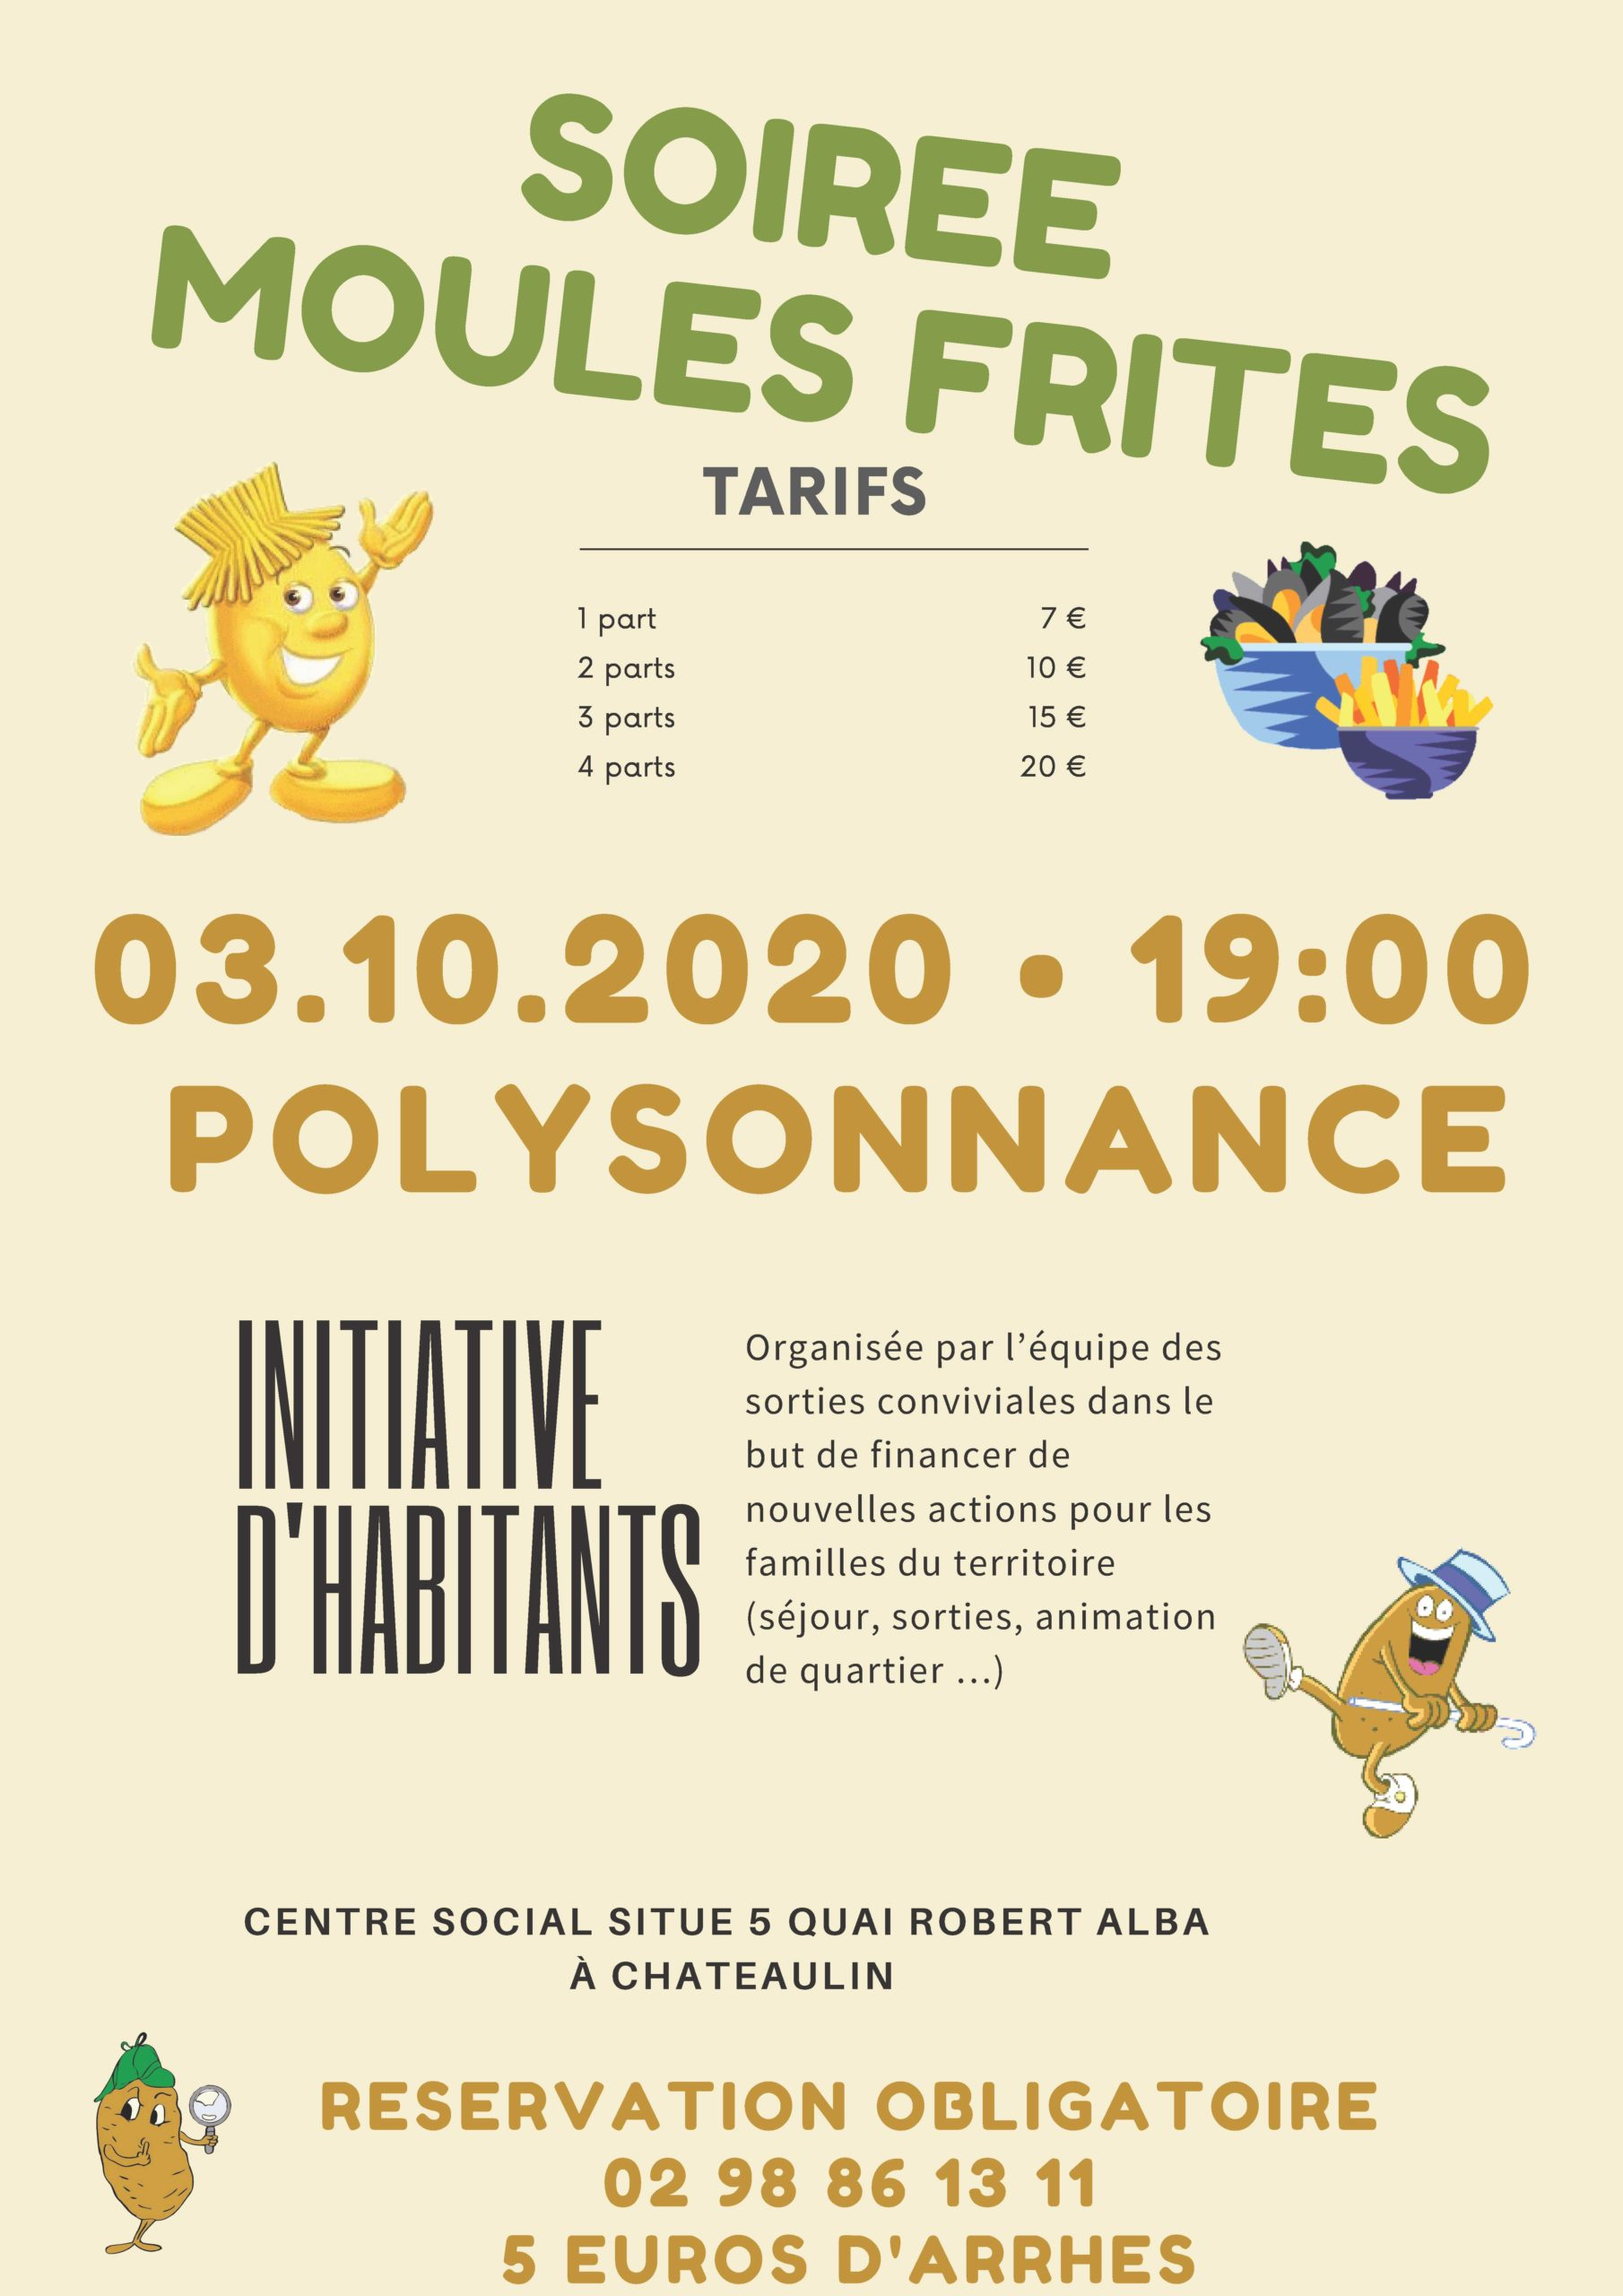 SOIREE MOULES FRITES 03/10